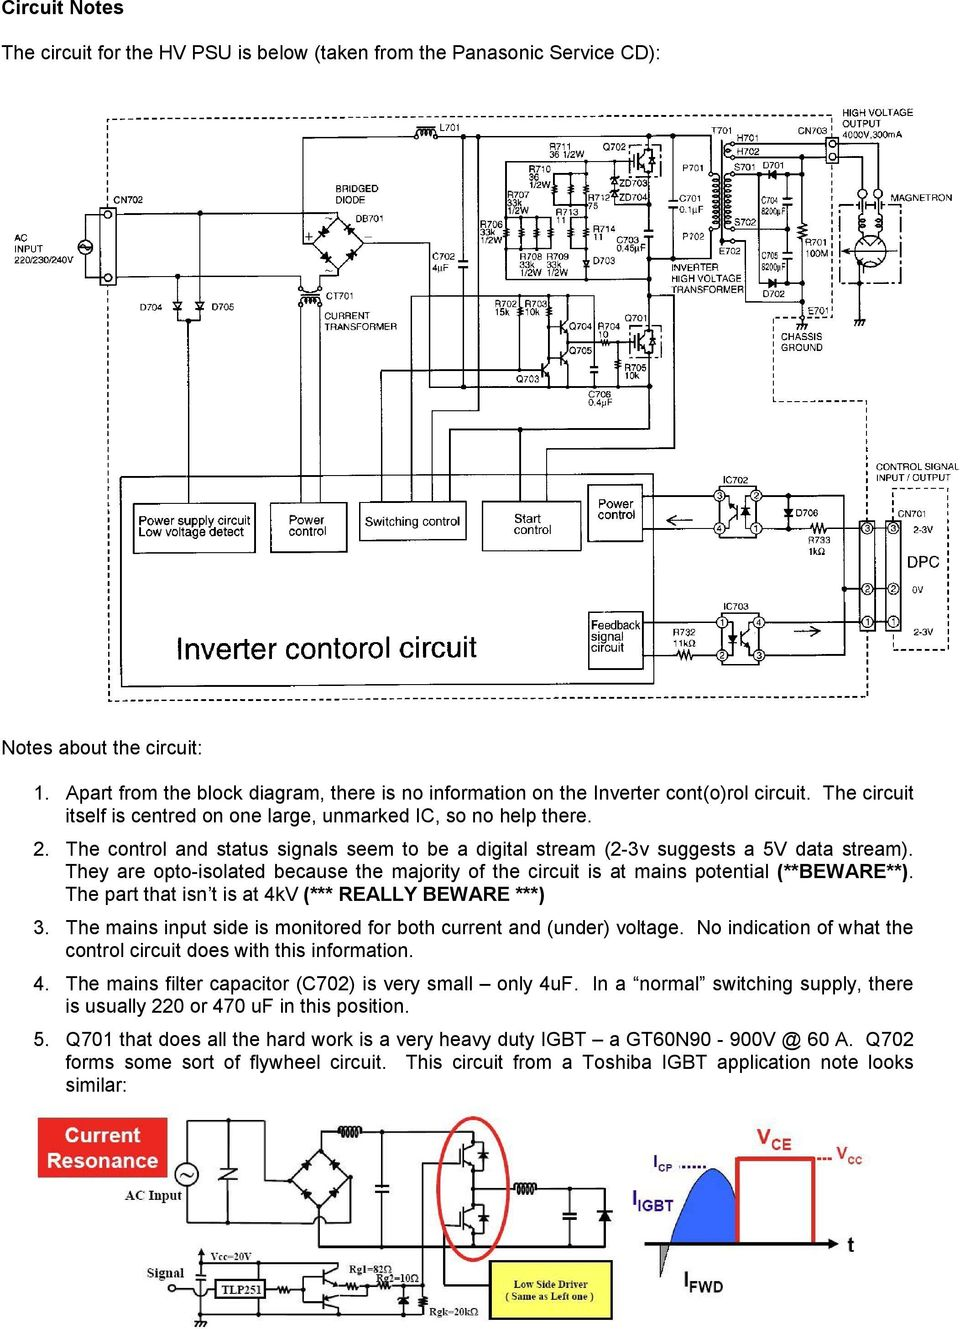 Panasonic Microwave Oven Inverter Hv Power Supply Pdf The Ne555 Fm Modulation Circuit Controlcircuit Diagram Control And Status Signals Seem To Be A Digital Stream 2 3v Suggests